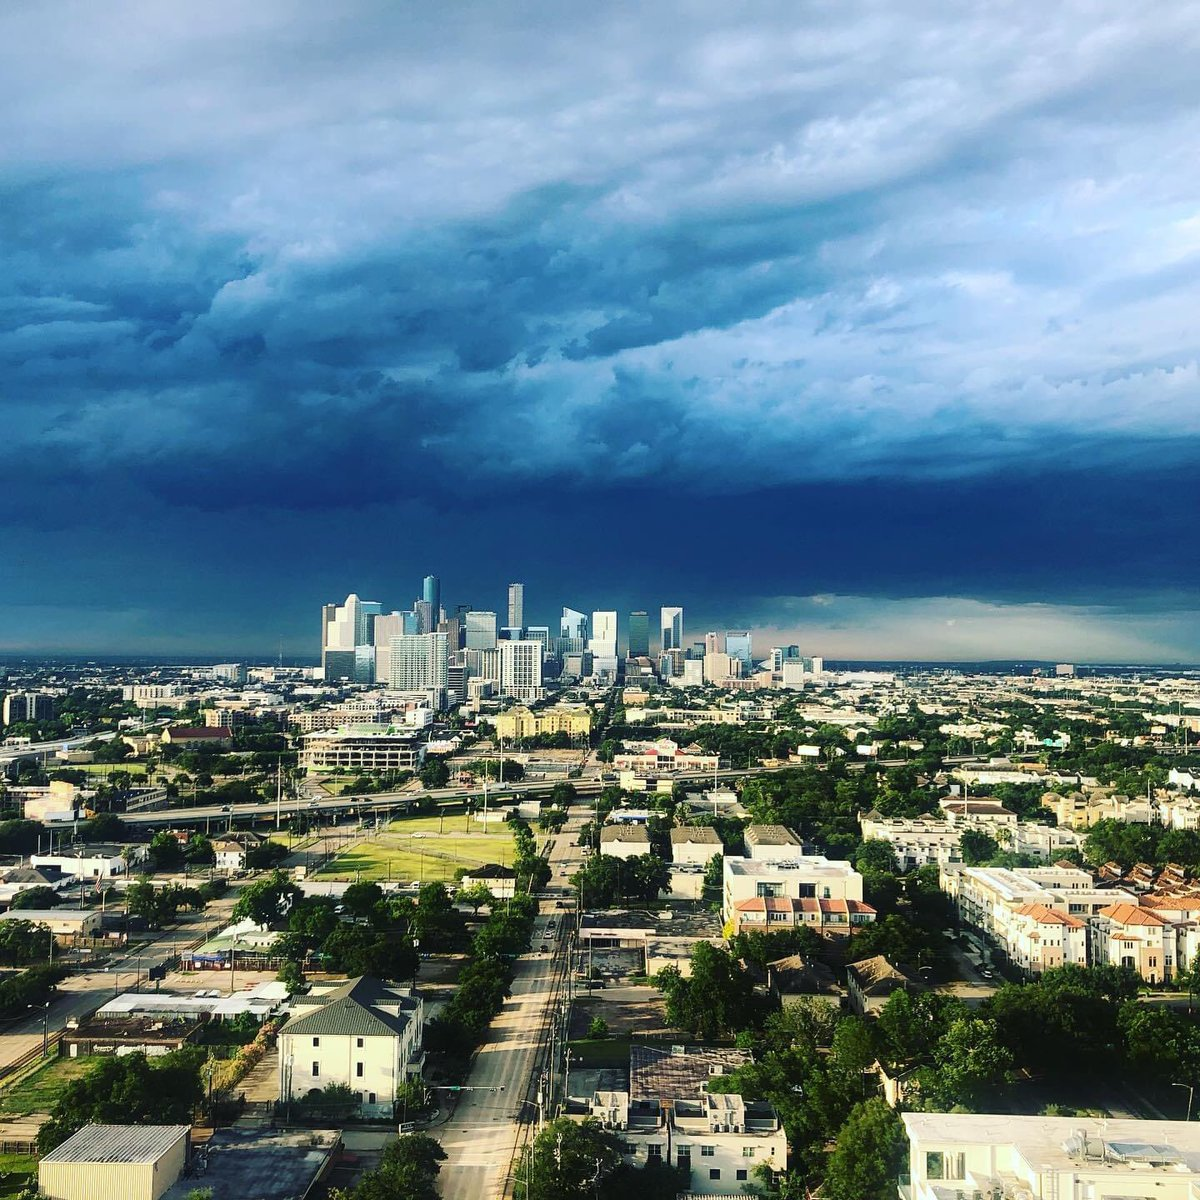 Storm a' brewing. #Houston pic.twitter.com/R2bdcOkewi